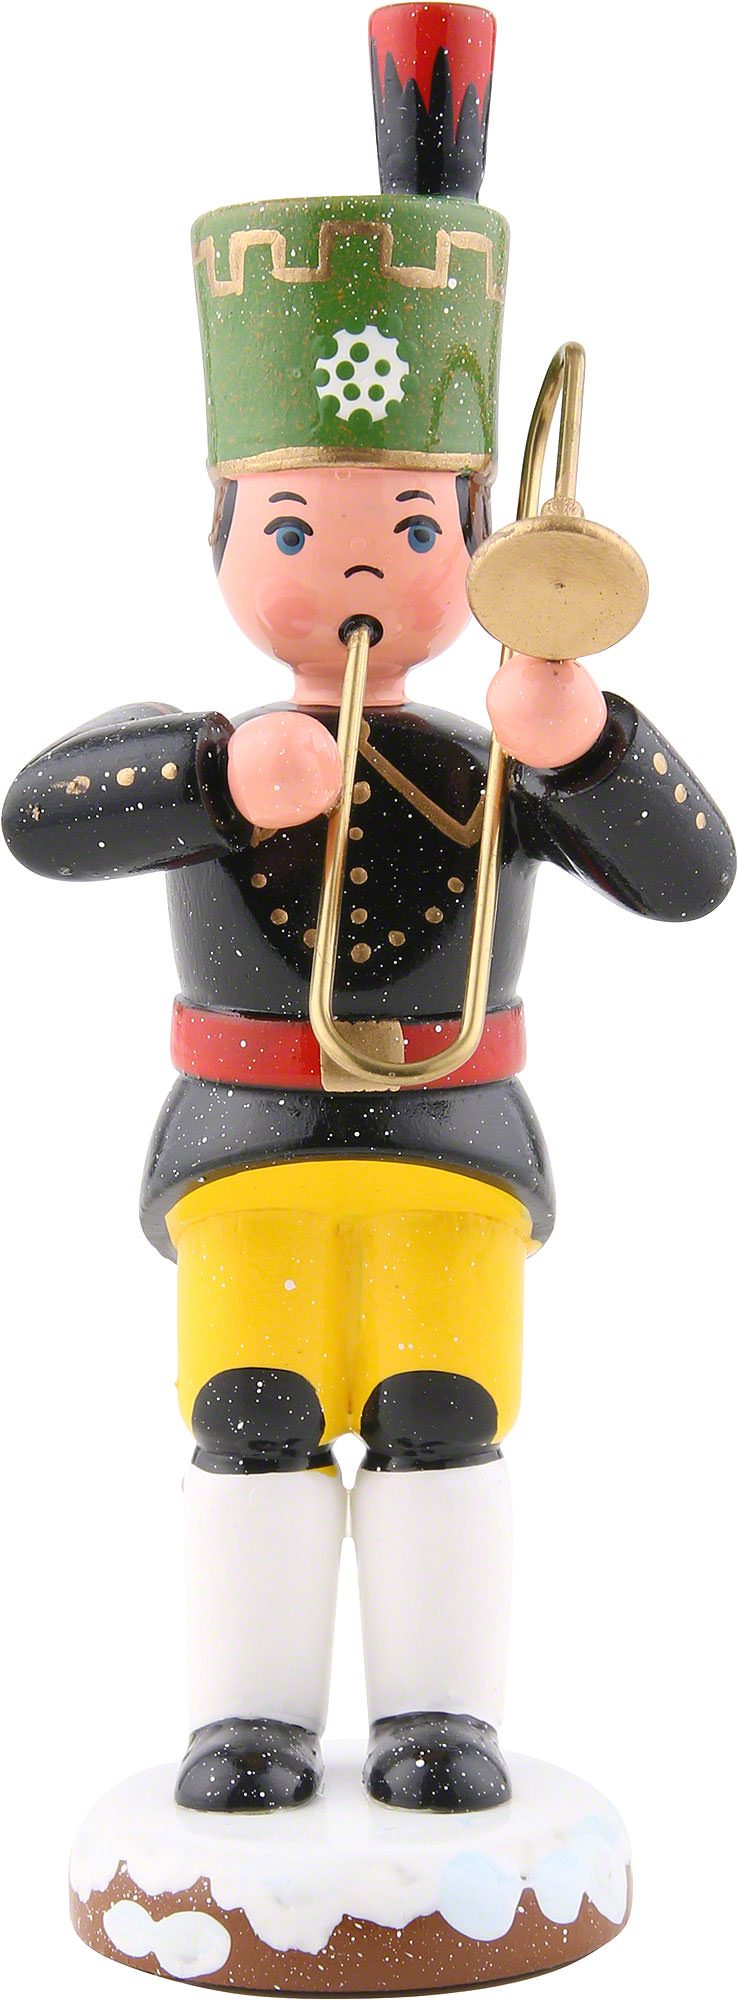 Winter Children Bergmann Trombone (9cm/3,5in)ch by Hubrig Volkskunst.